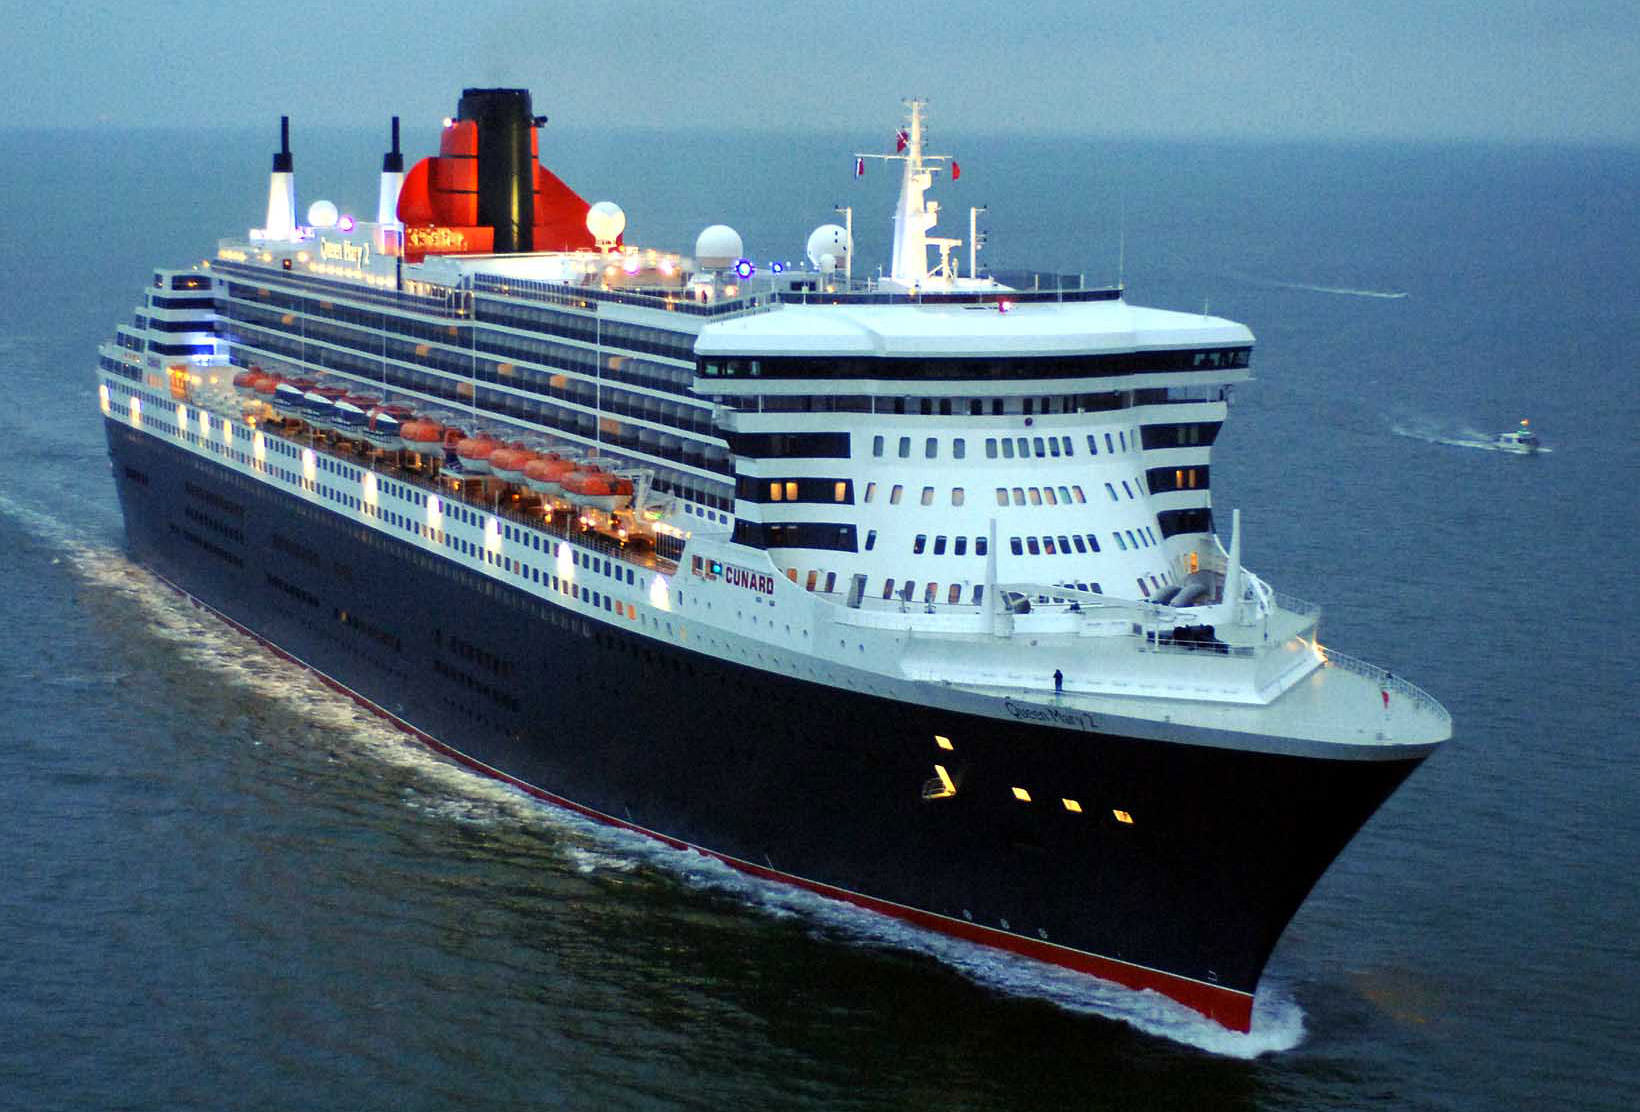 Cunard's Queen Mary 2: the only modern transatlantic ocean line. Photo courtesy of Cunard Line.